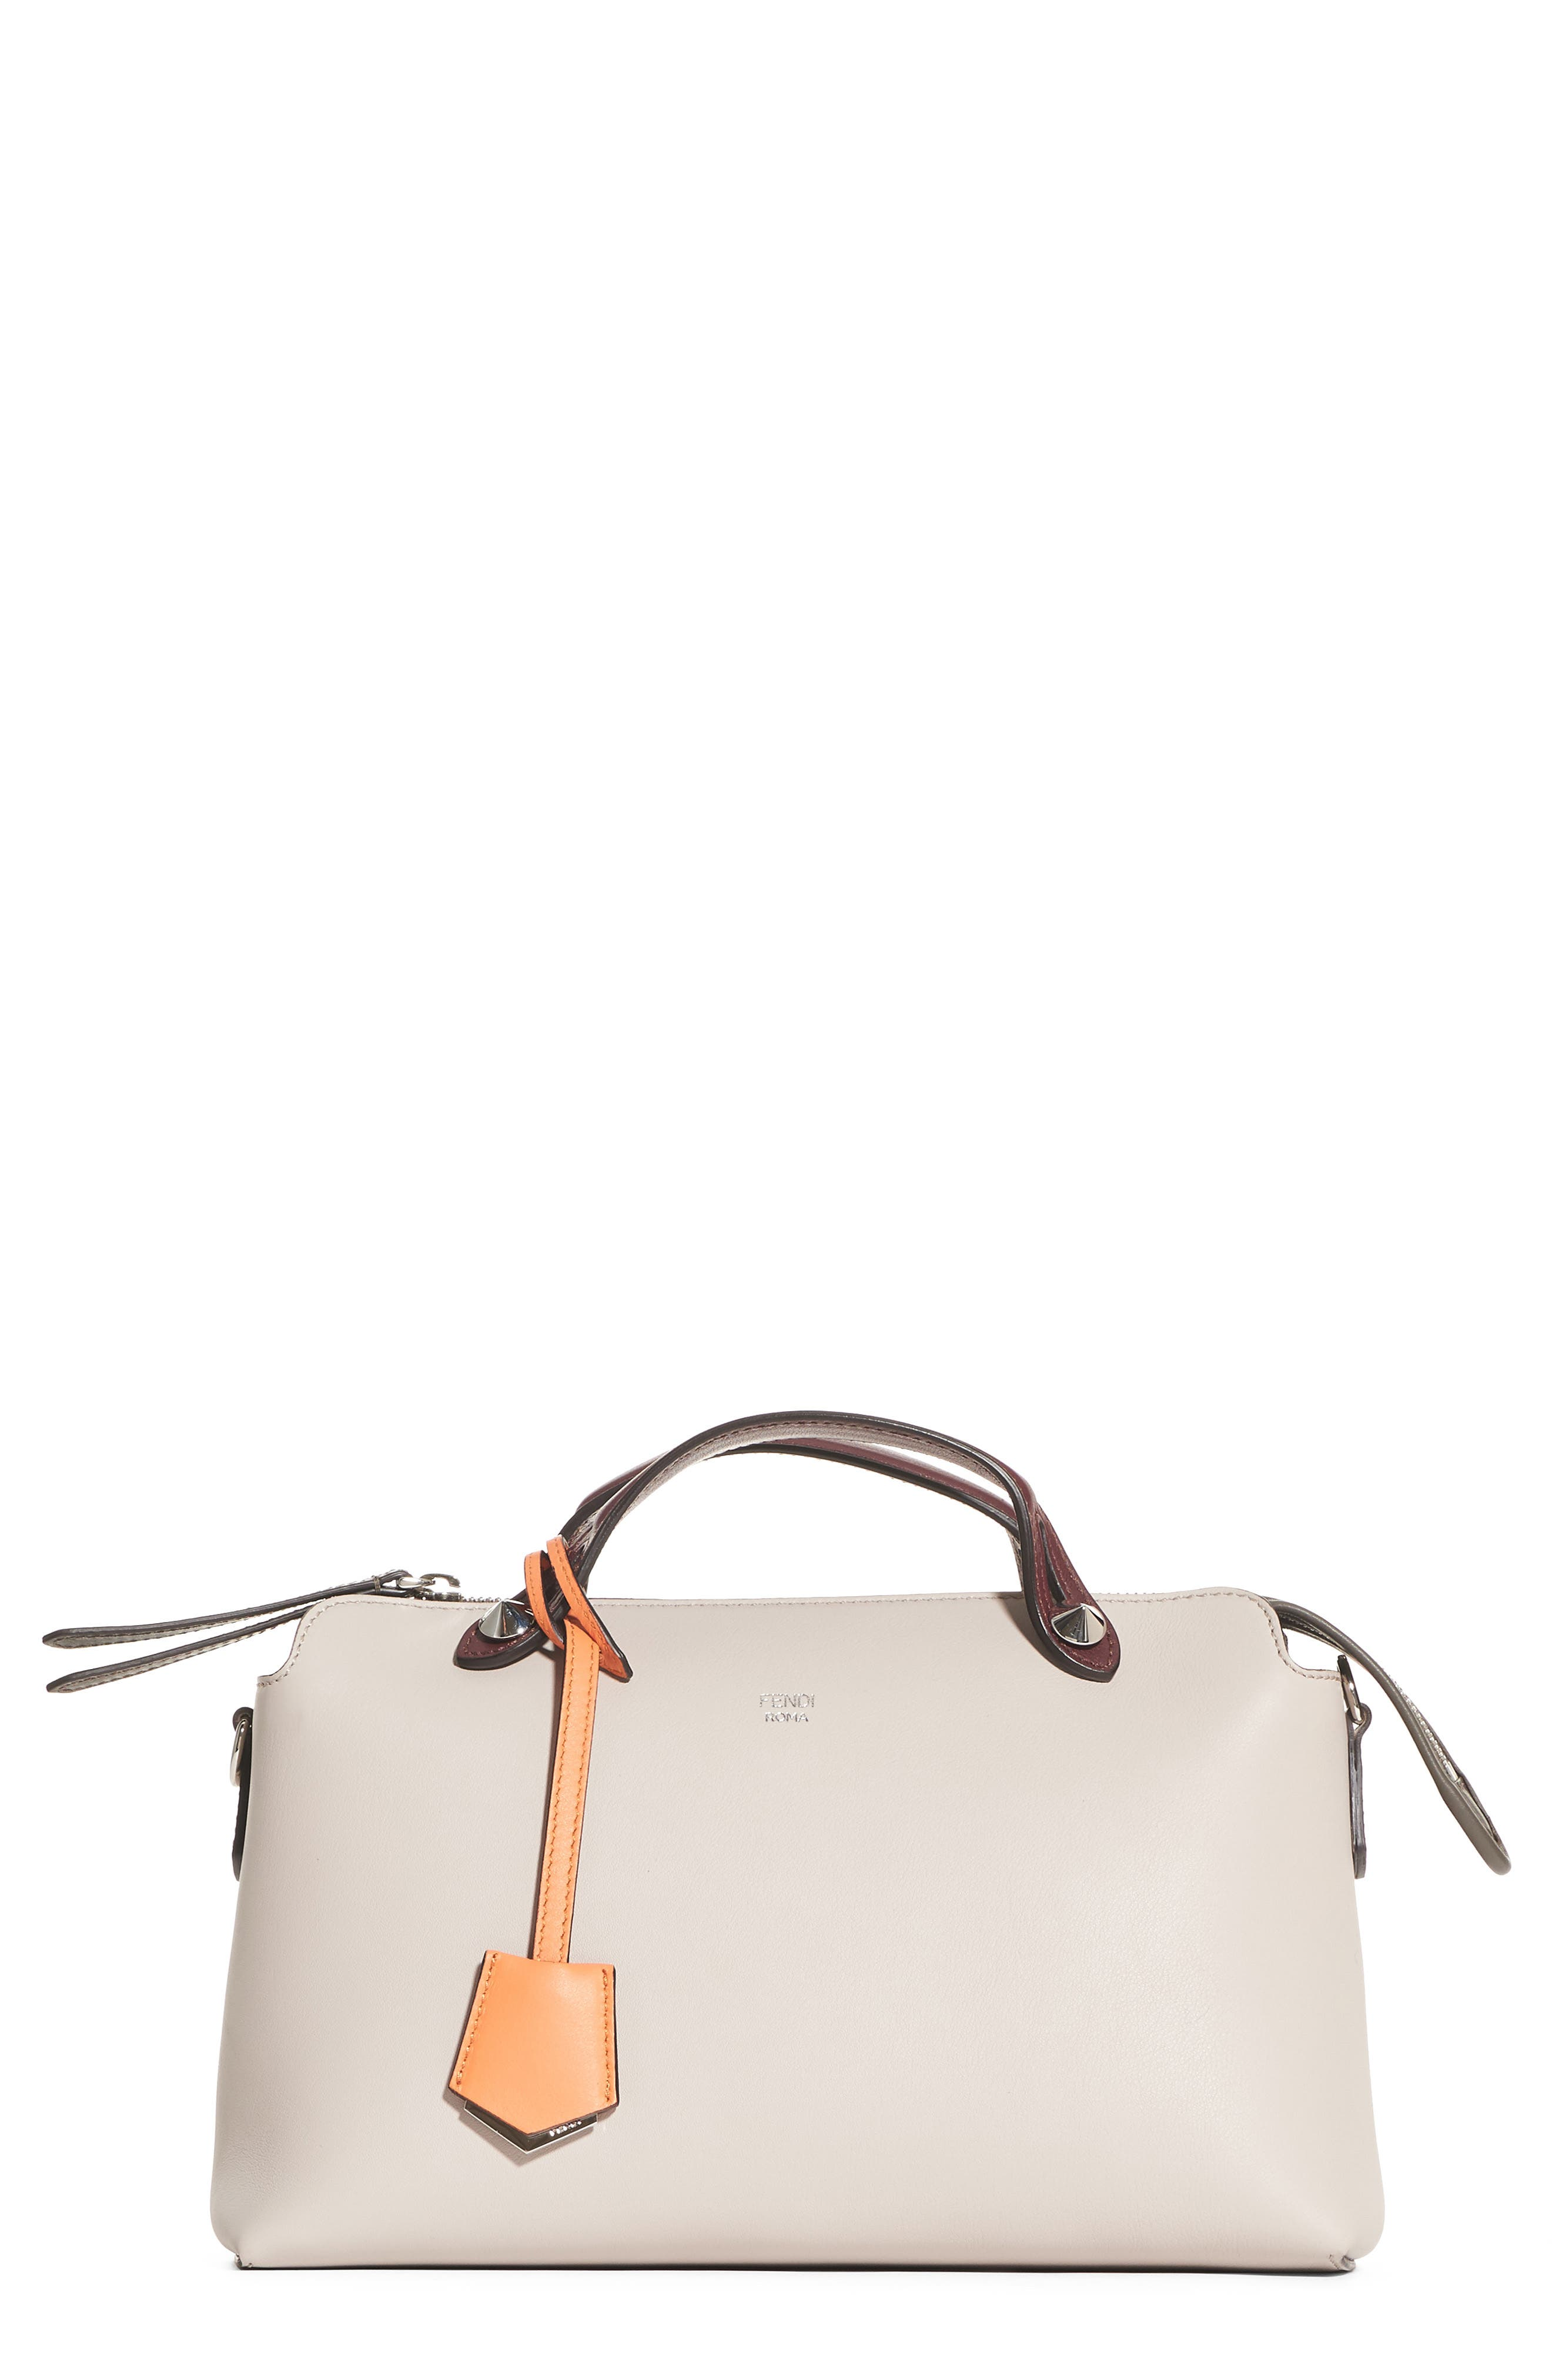 Alternate Image 1 Selected - Fendi 'Medium By the Way' Colorblock Leather Shoulder Bag